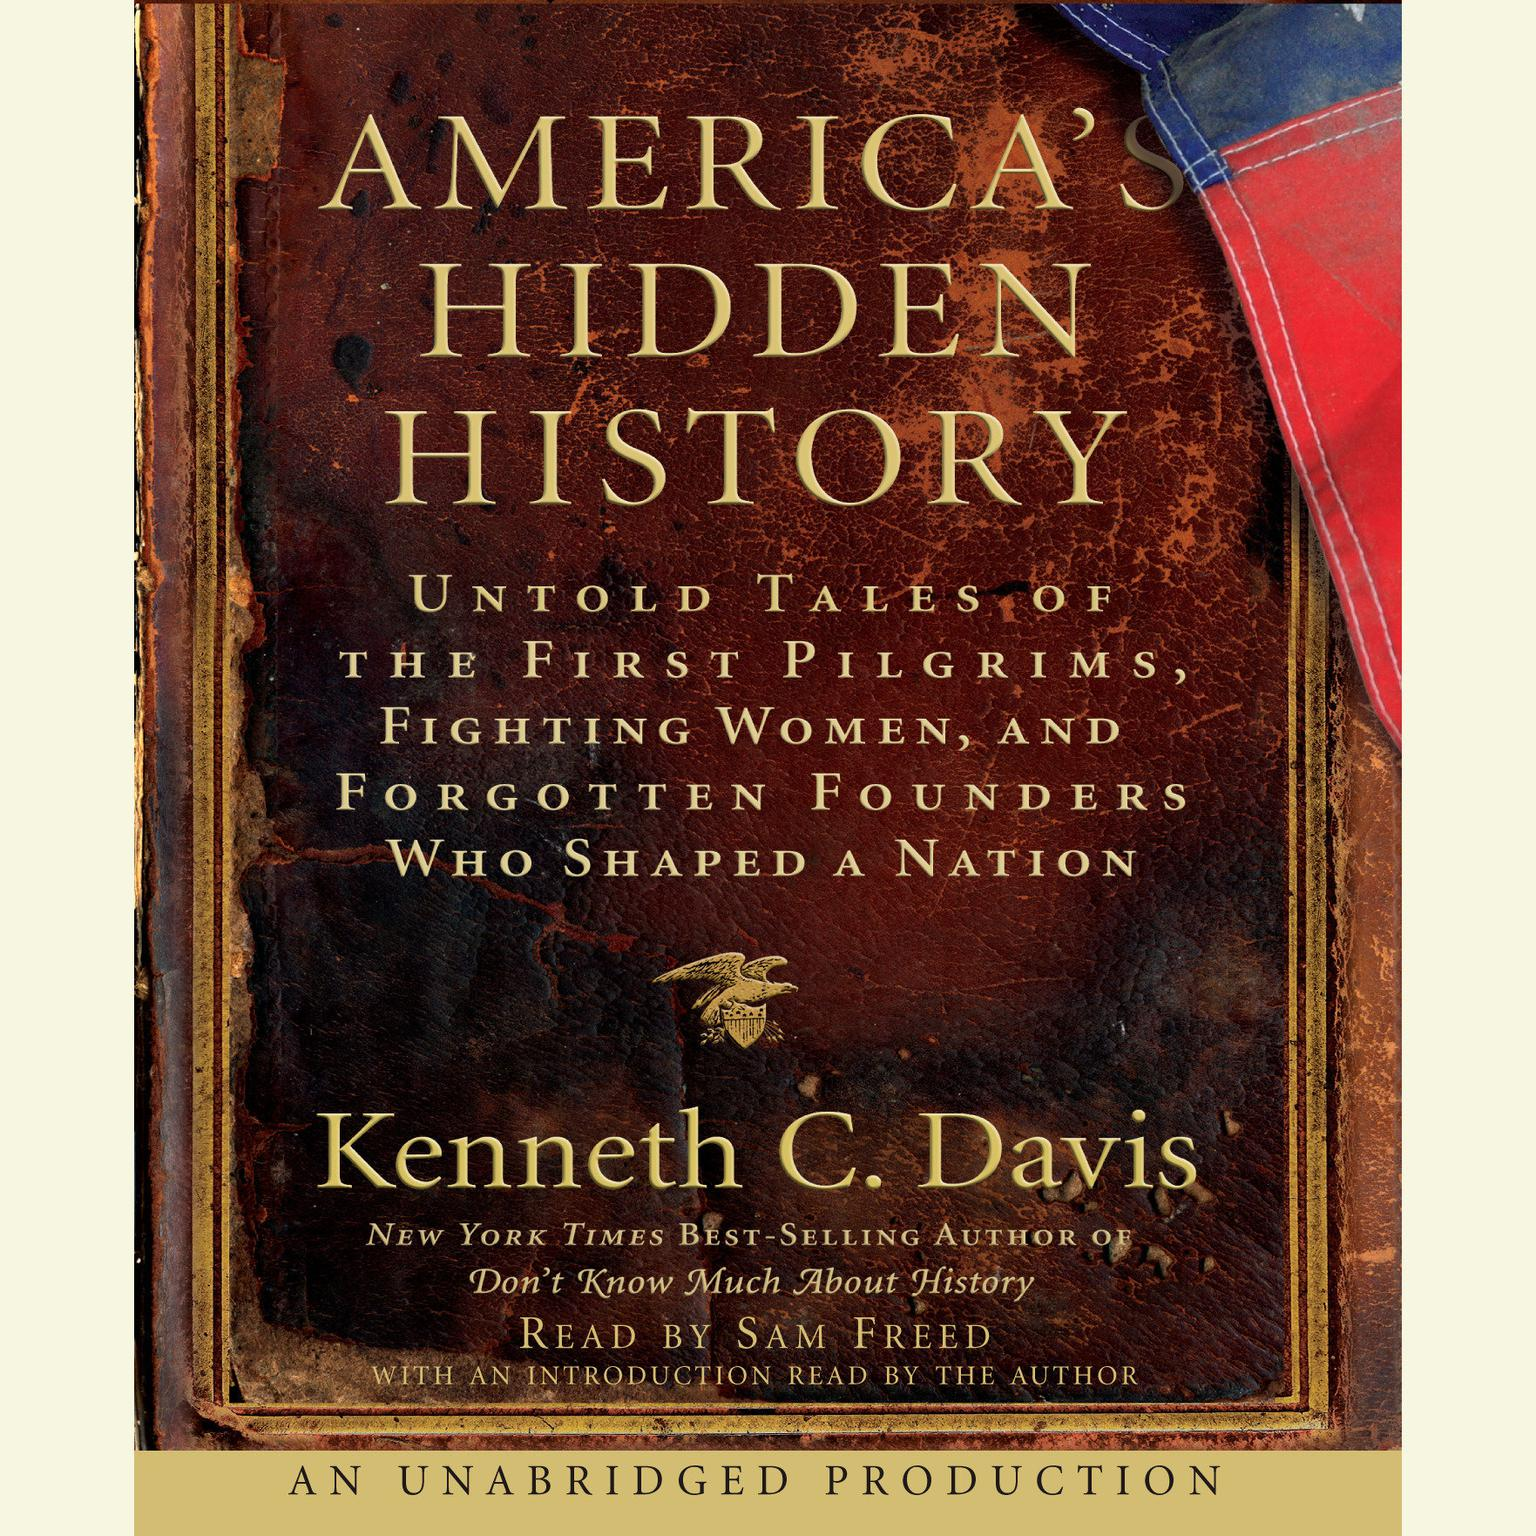 Printable America's Hidden History: Untold Tales of the First Pilgrims, Fighting Women and Forgotten Founders Who Shaped a Nation Audiobook Cover Art